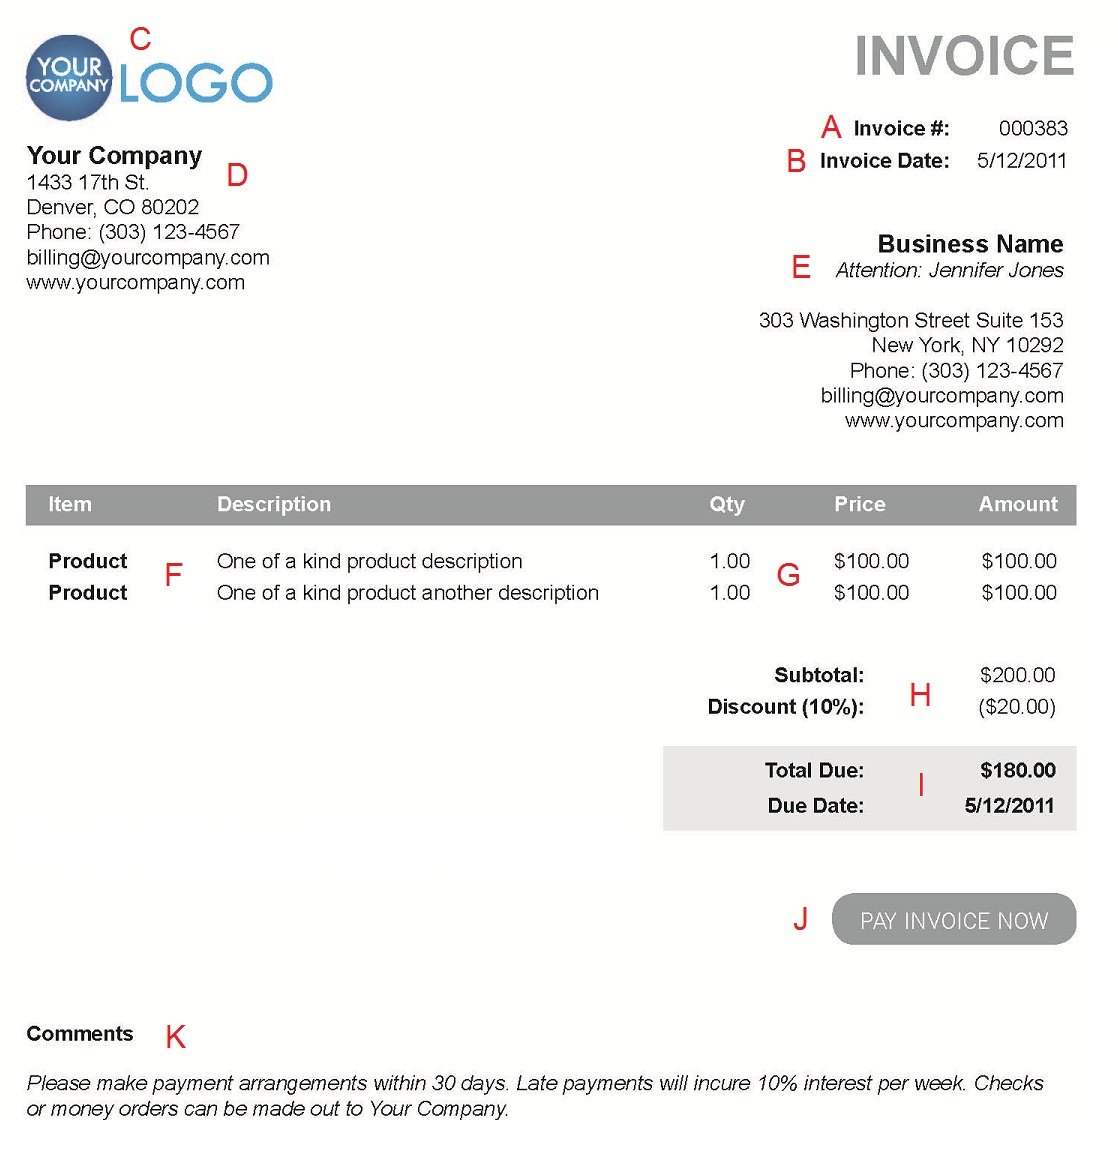 Amatospizzaus  Fascinating The  Different Sections Of An Electronic Payment Invoice With Gorgeous A  With Adorable Invoice And Inventory Management Software Also Difference Between Invoice Discounting And Factoring In Addition Terms Invoice And Microsoft Invoicing Software As Well As Proforma Invoice Download Additionally Epson Invoice Printer From Paysimplecom With Amatospizzaus  Gorgeous The  Different Sections Of An Electronic Payment Invoice With Adorable A  And Fascinating Invoice And Inventory Management Software Also Difference Between Invoice Discounting And Factoring In Addition Terms Invoice From Paysimplecom